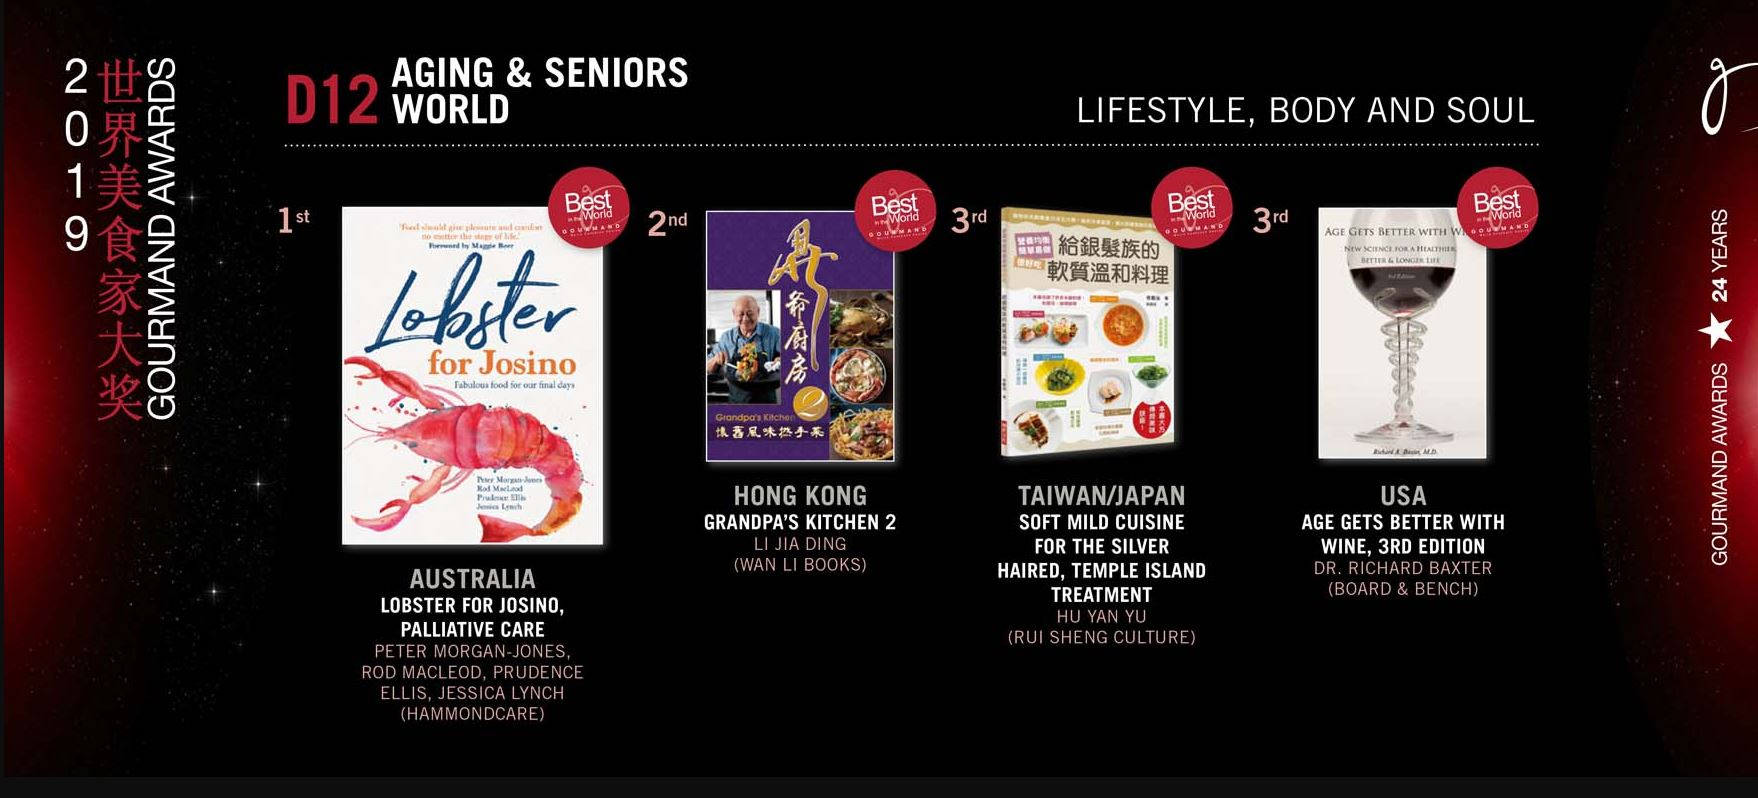 Best in World 1st place Aging and Seniors Gourmand Awards 2019